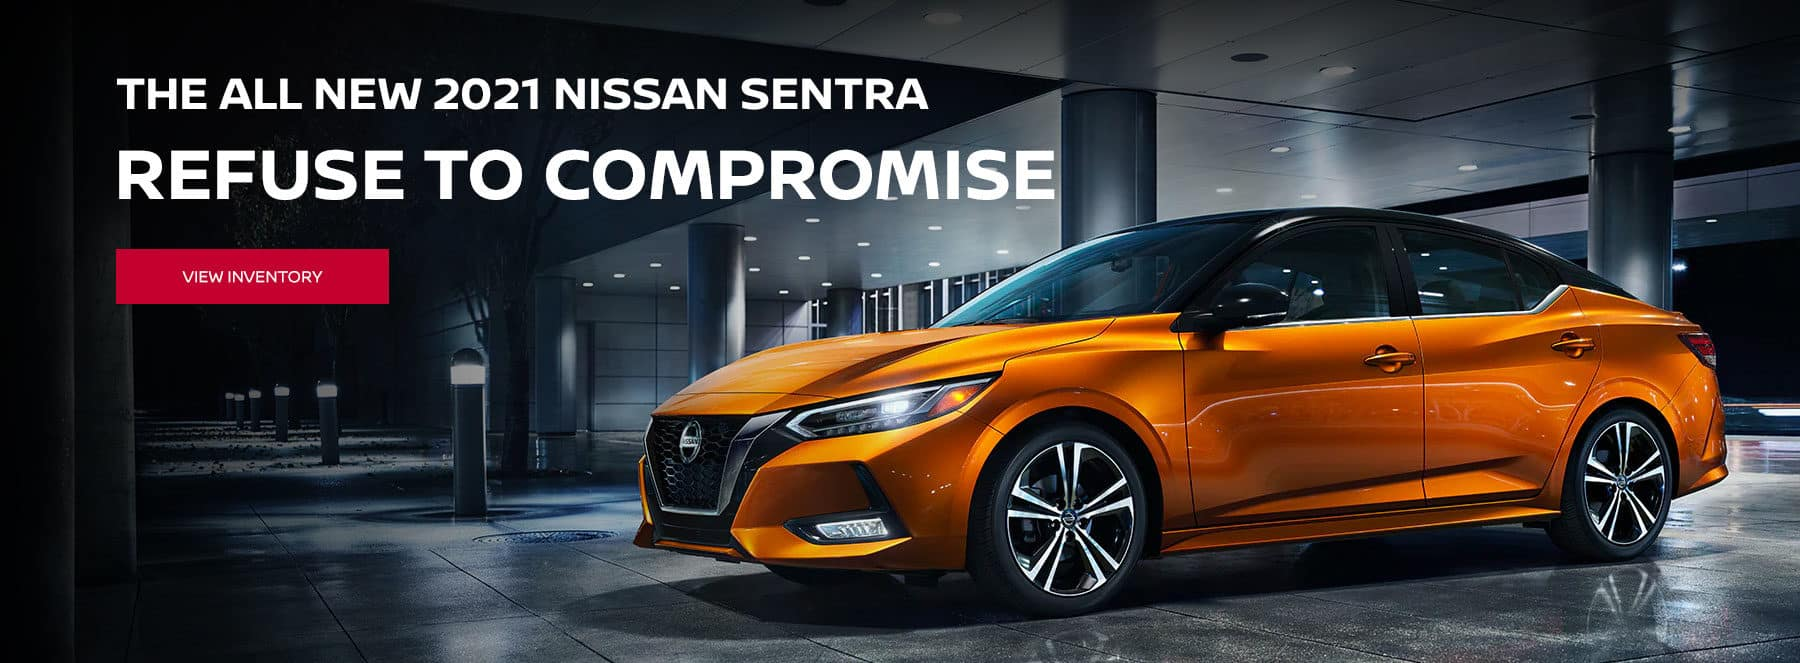 The new 2021 Nissan Sentra Refuse to Compromise